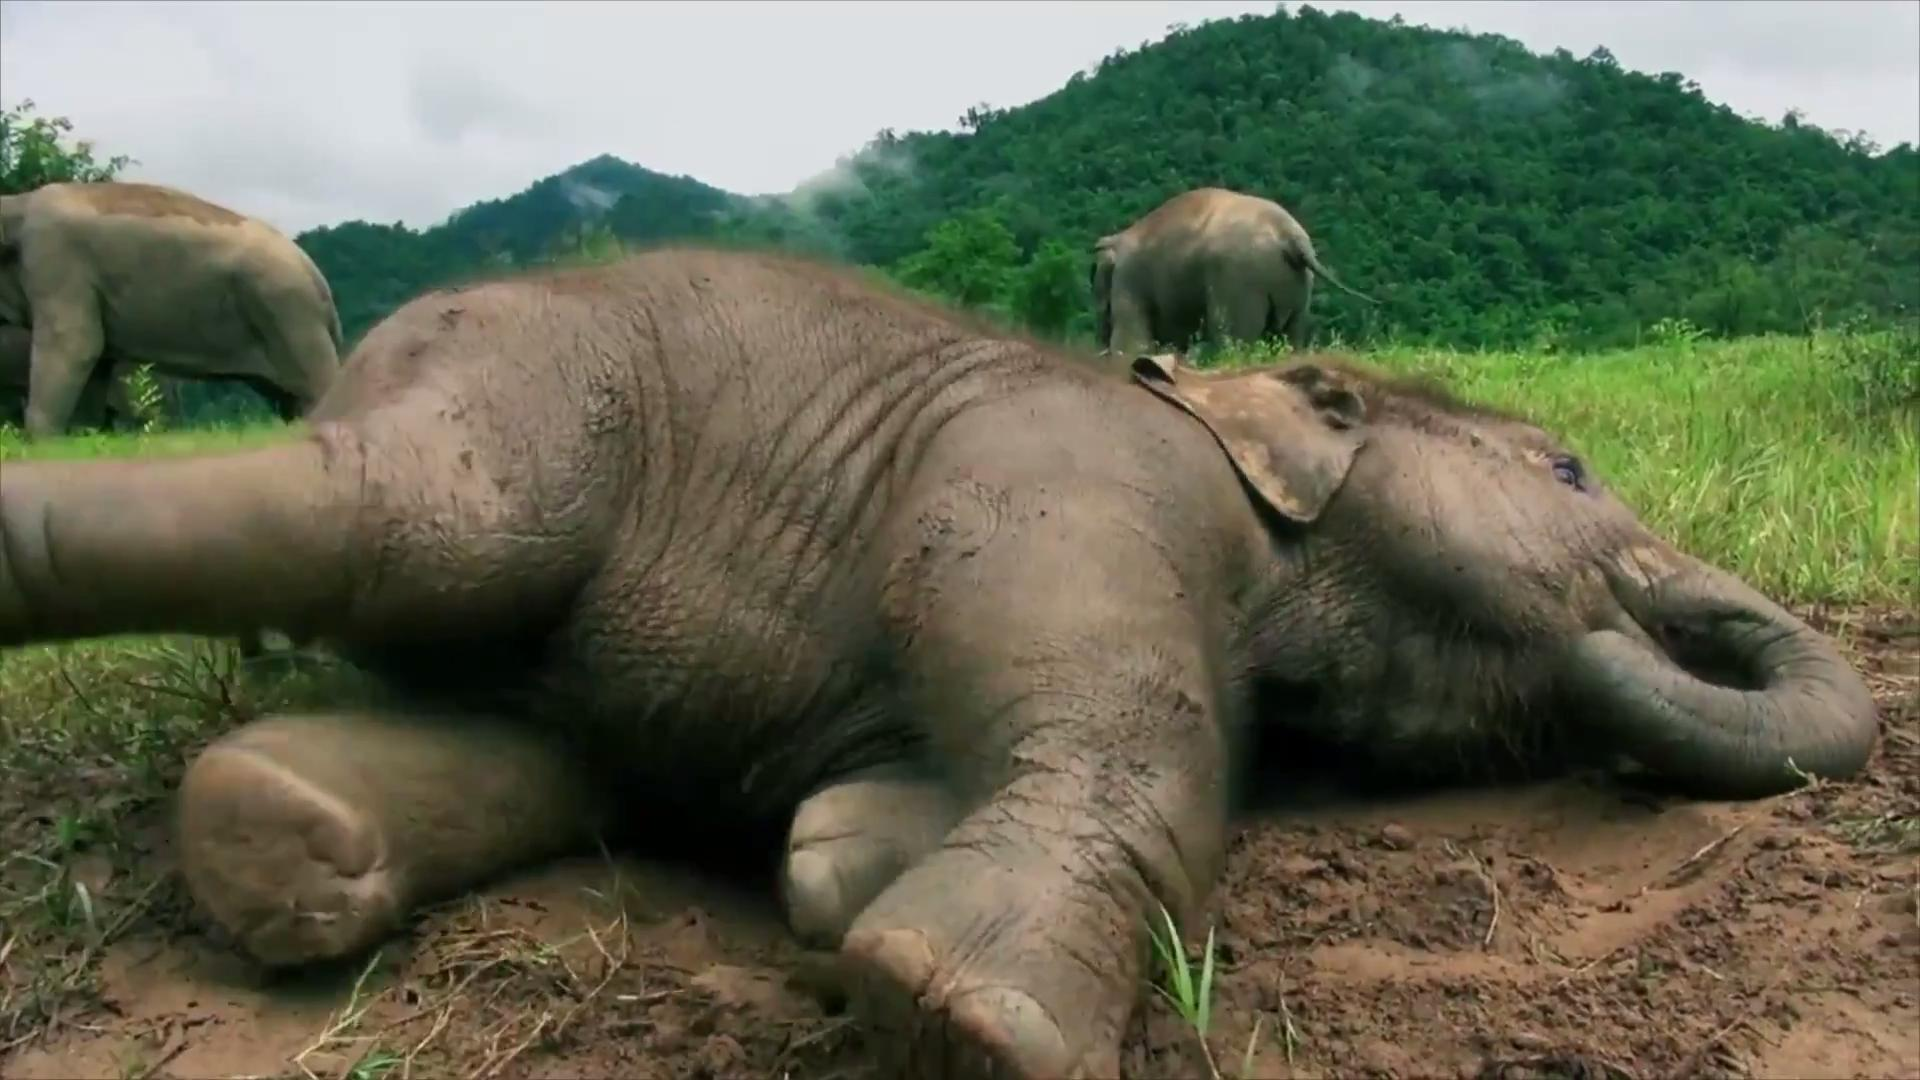 Crushing photos show emaciated elephant forced to perform during festival in Sri Lanka